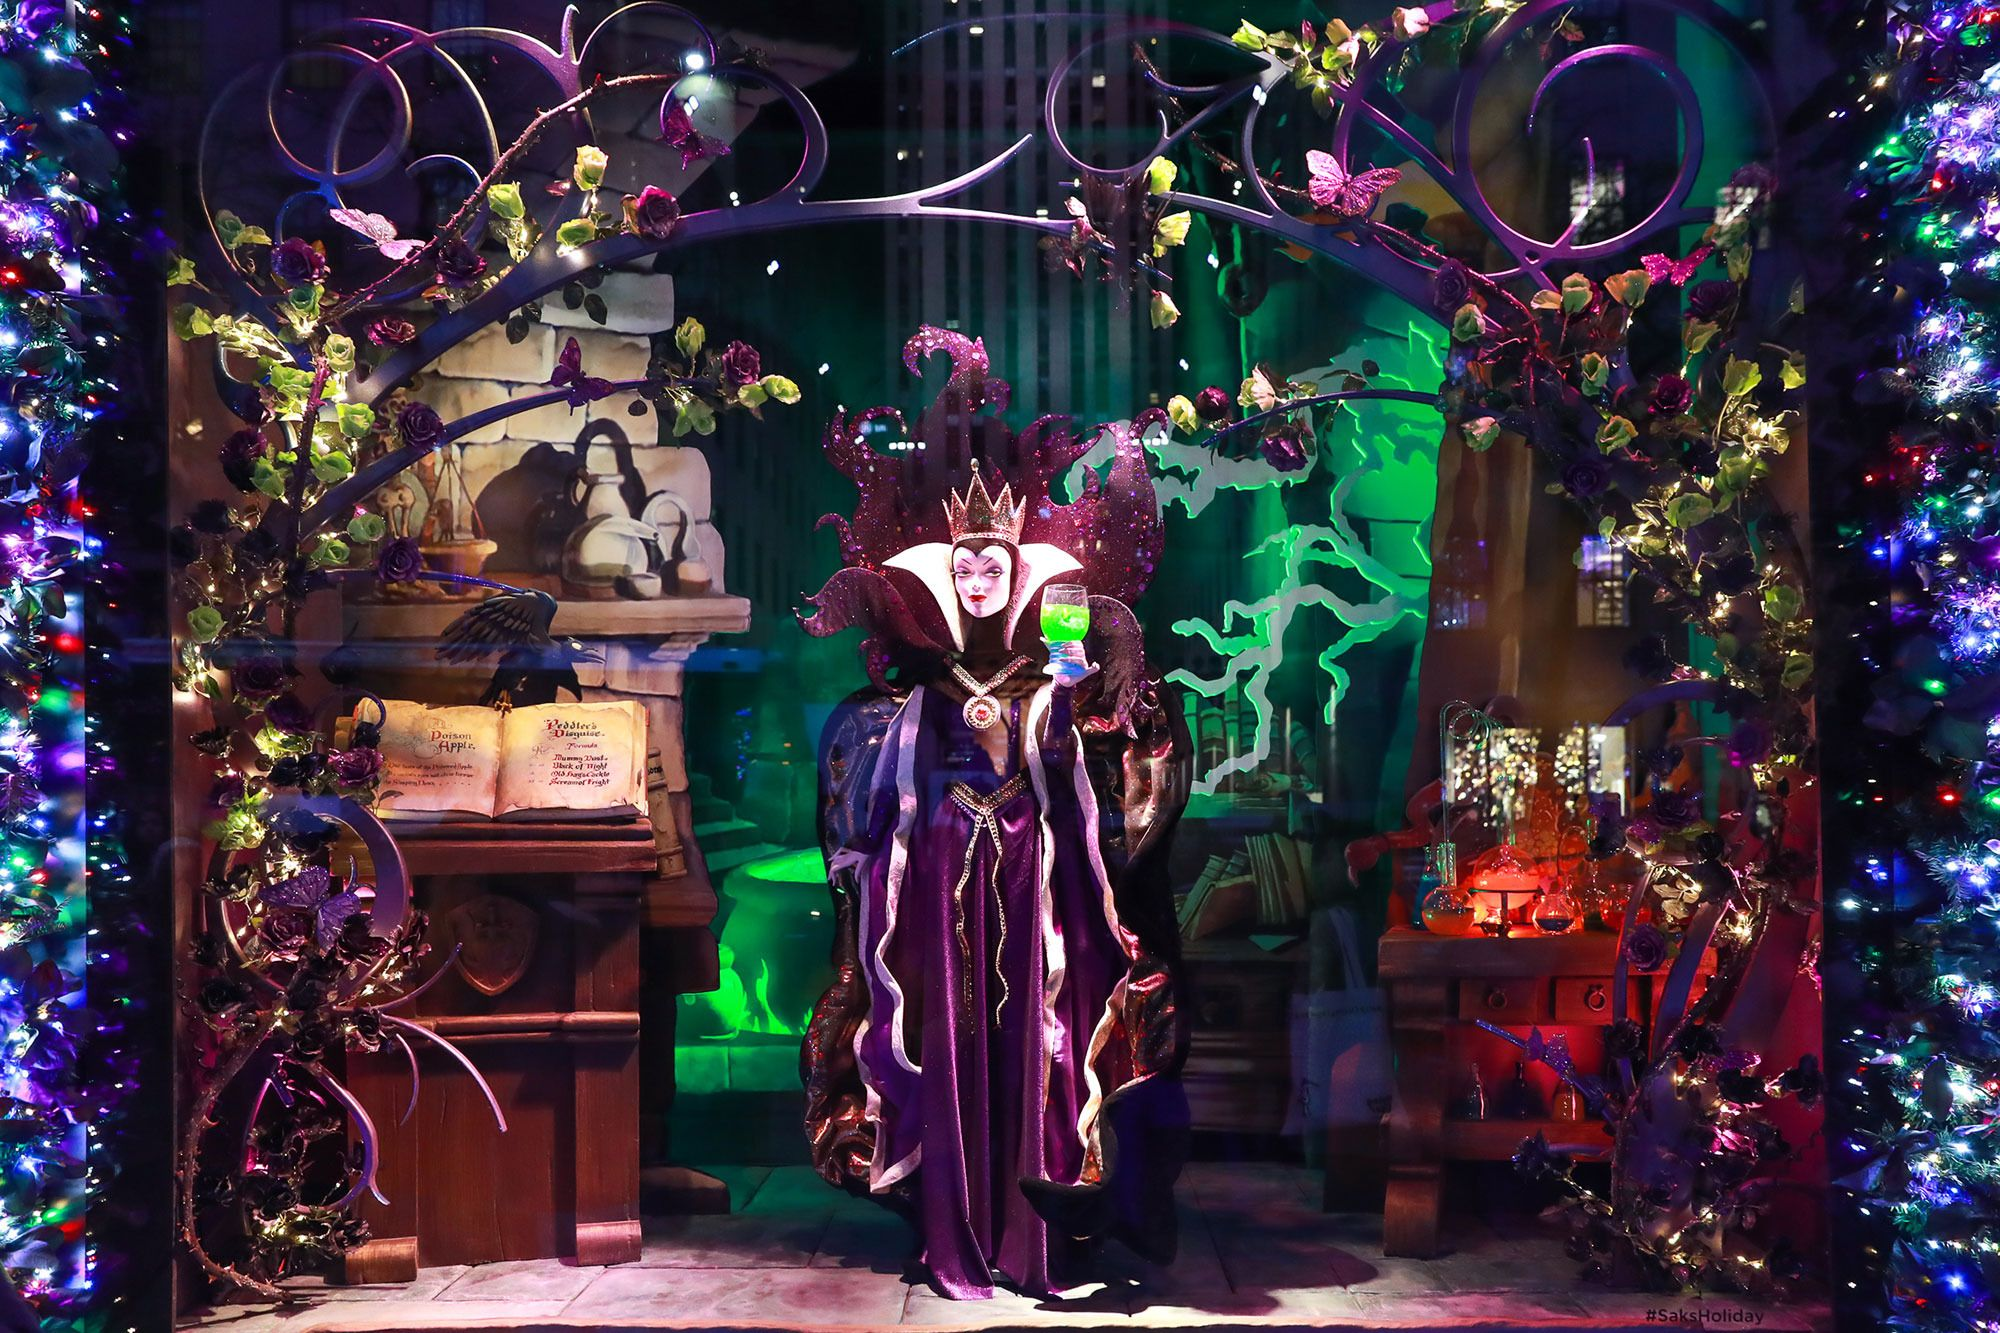 Saks Christmas Window Display 2020 See the Most Sparkling Holiday Windows in New York in 2020